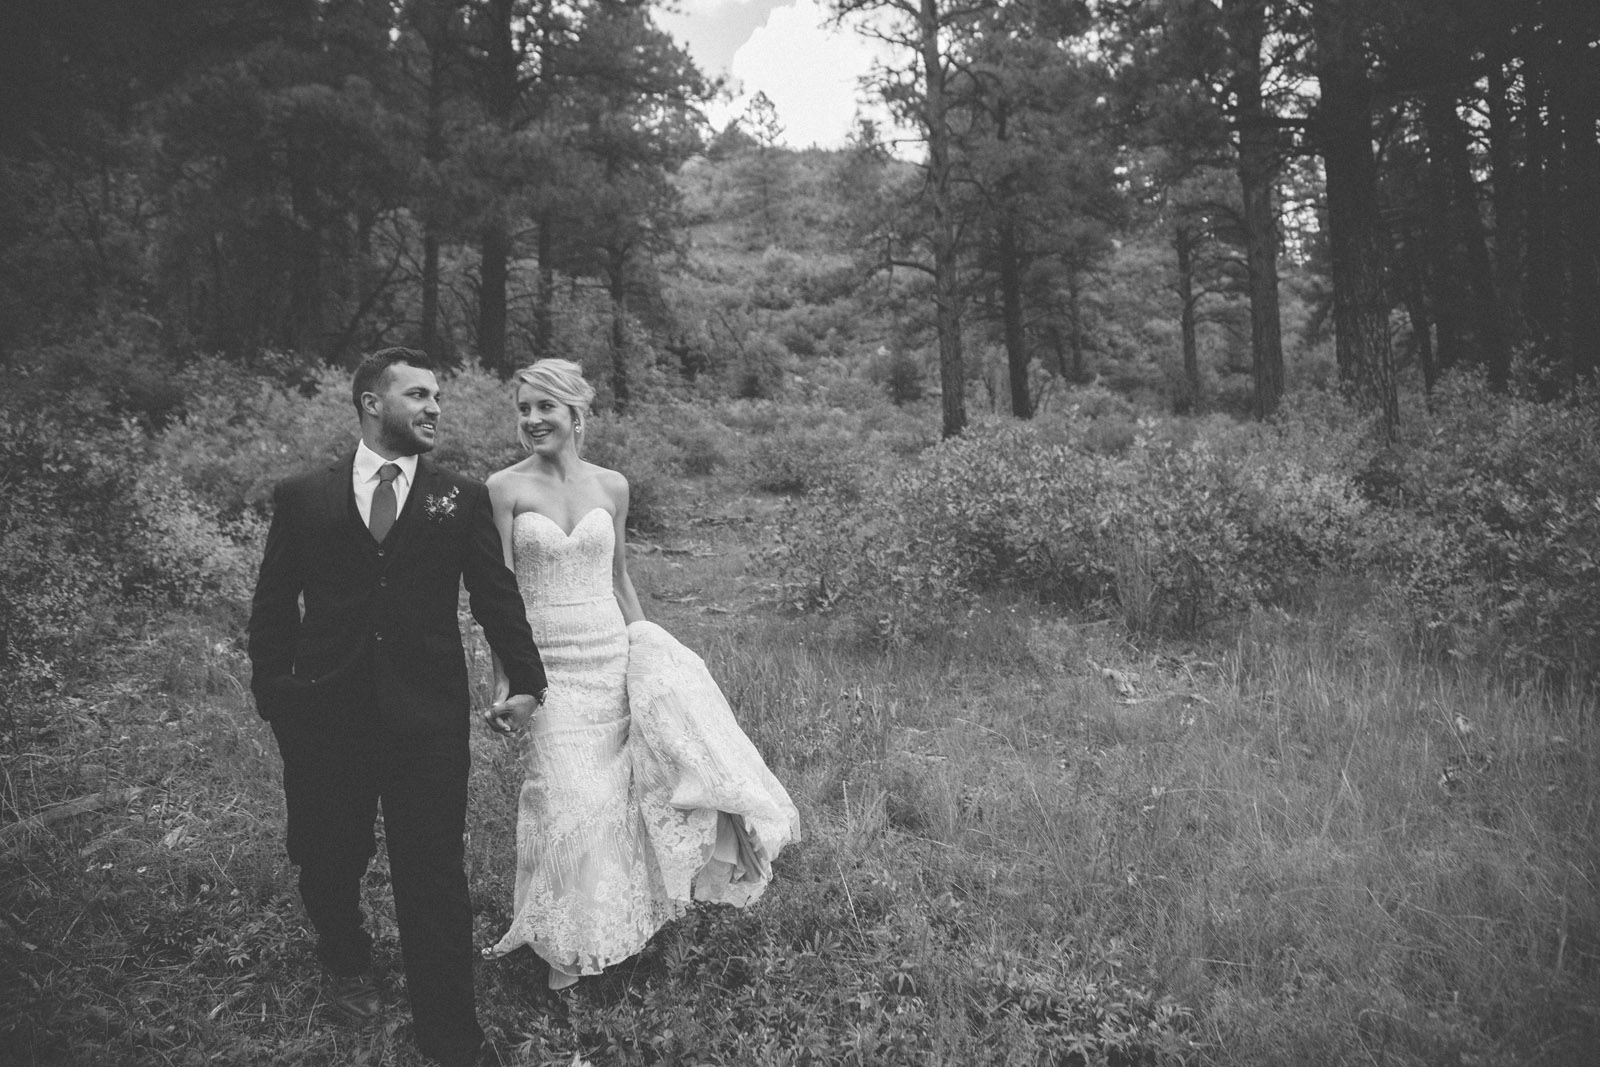 165-beautiful-bride-and-groom-photojournalist-portraits-at-elopement-wedding-in-durango-colorado-forest